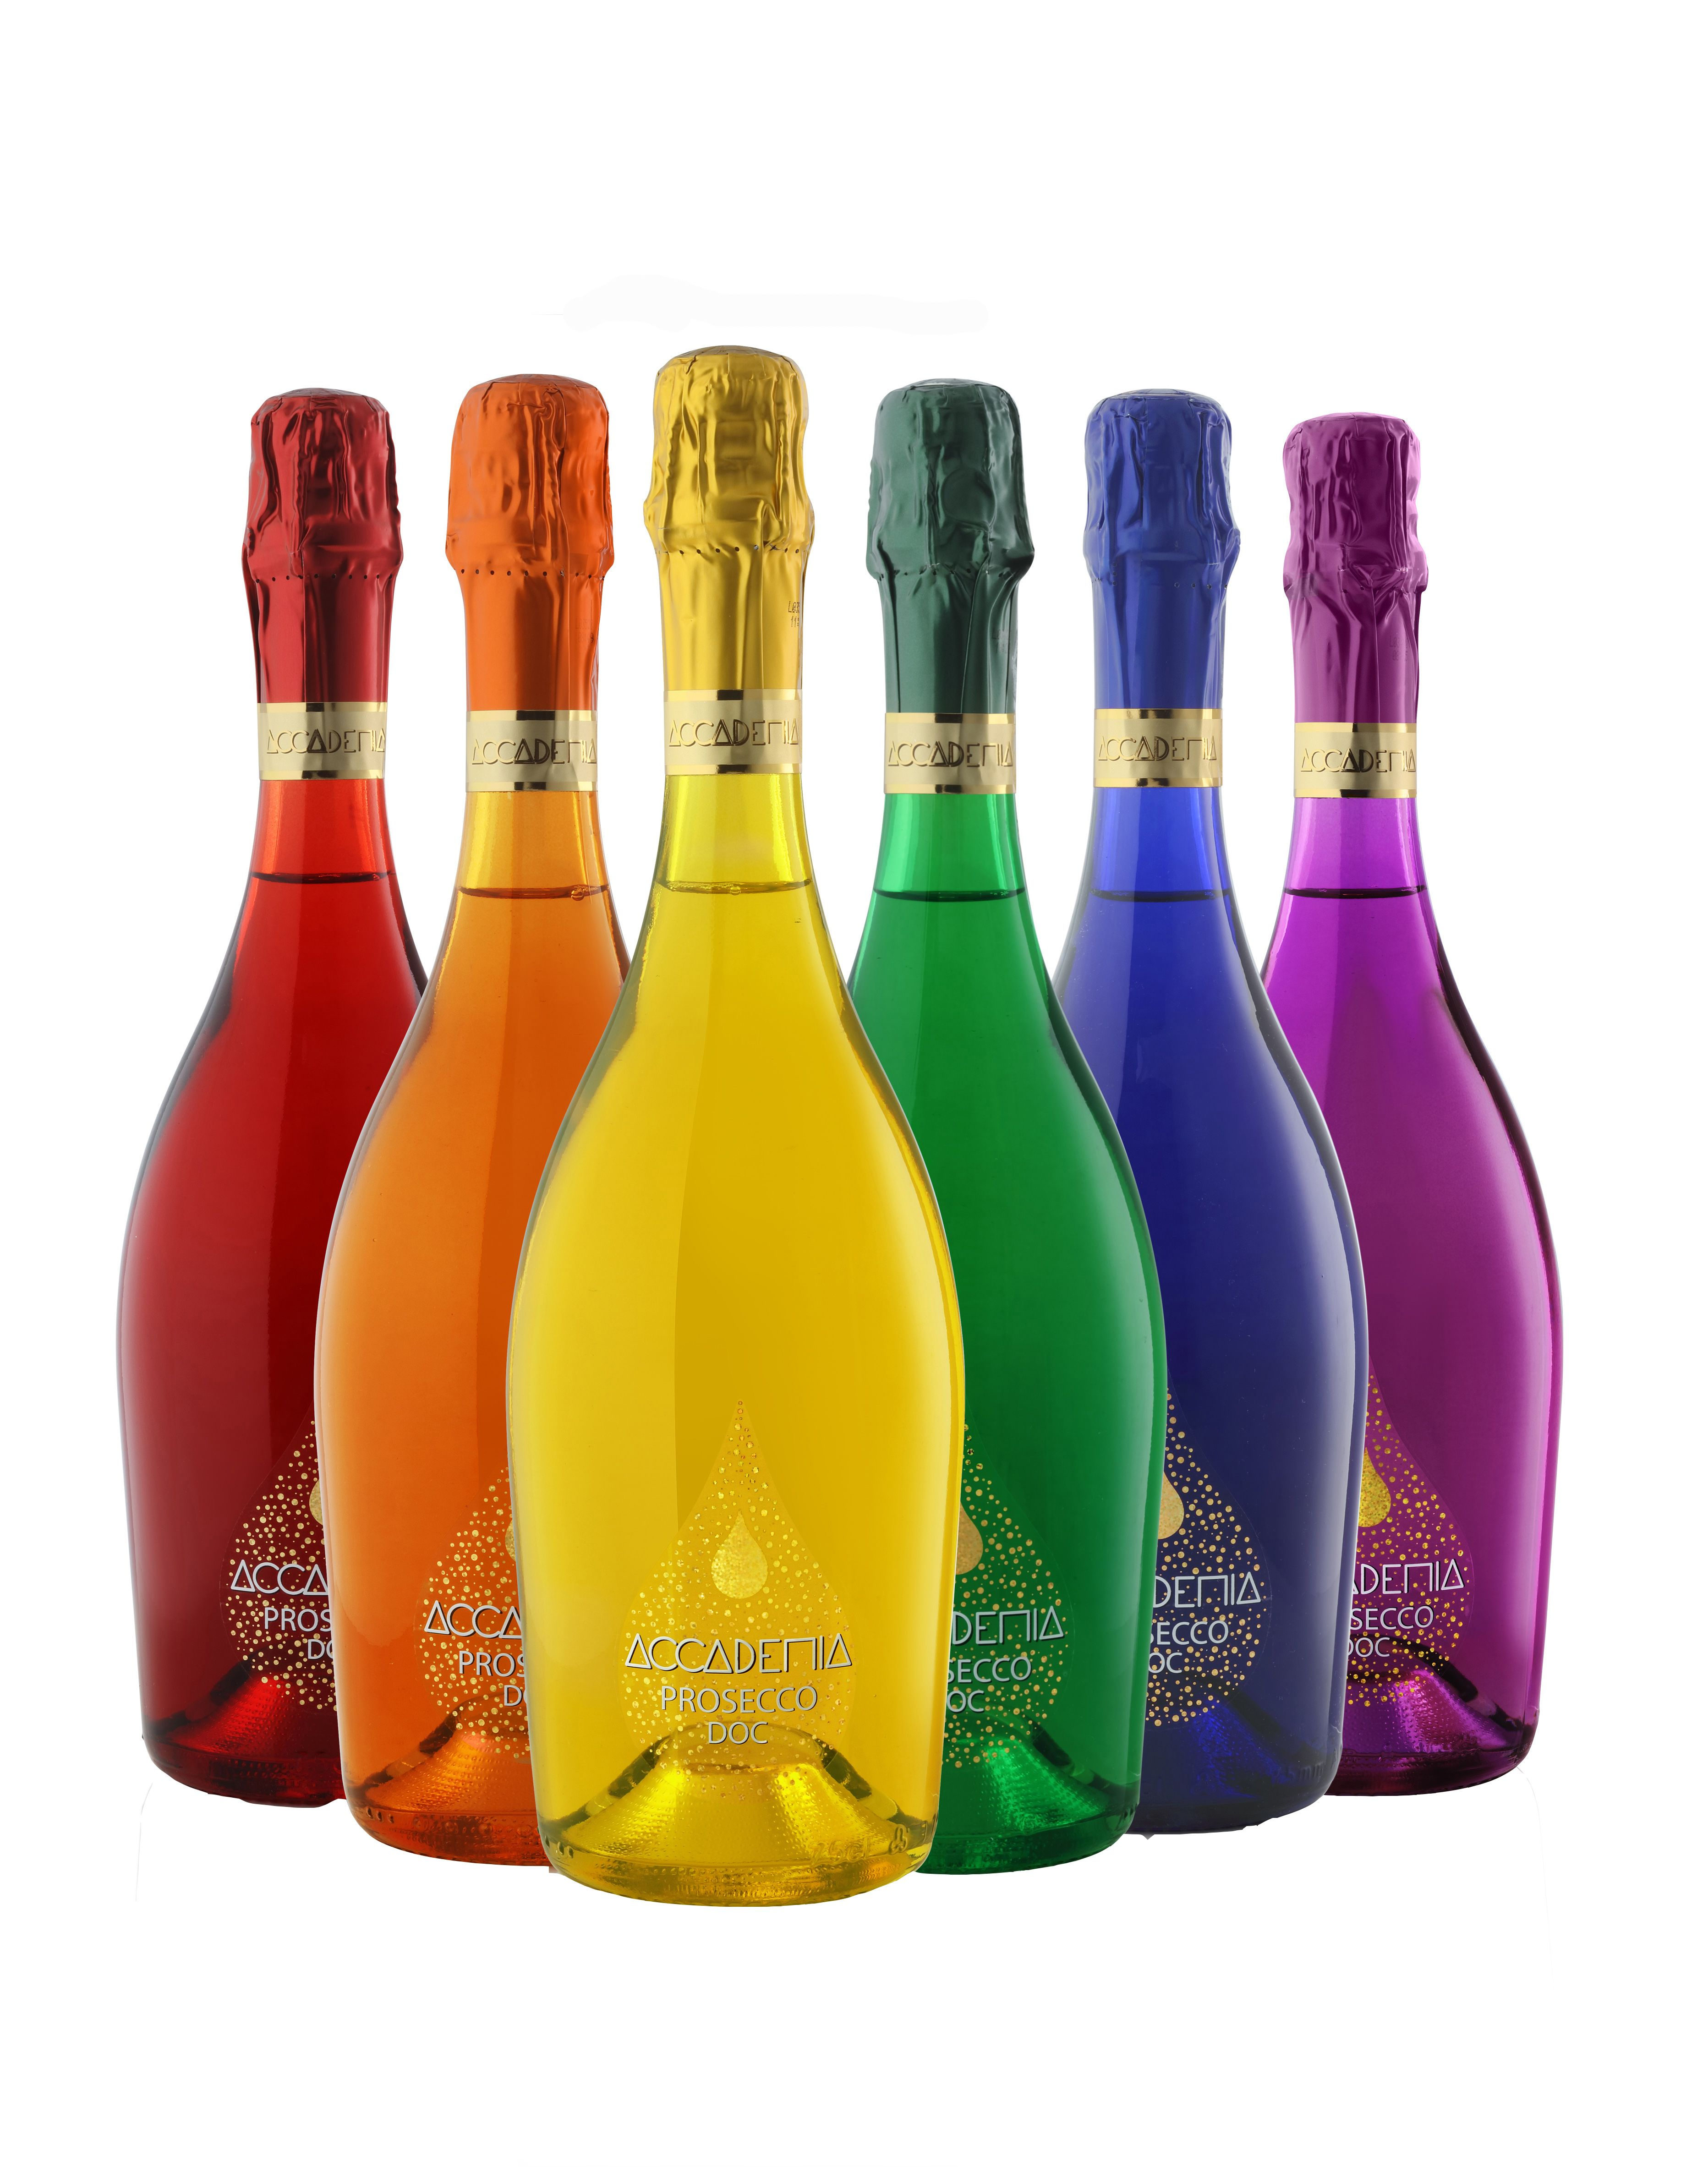 Bottega Accademia Rainbow Prosecco (6-bottle pack)  Front Label